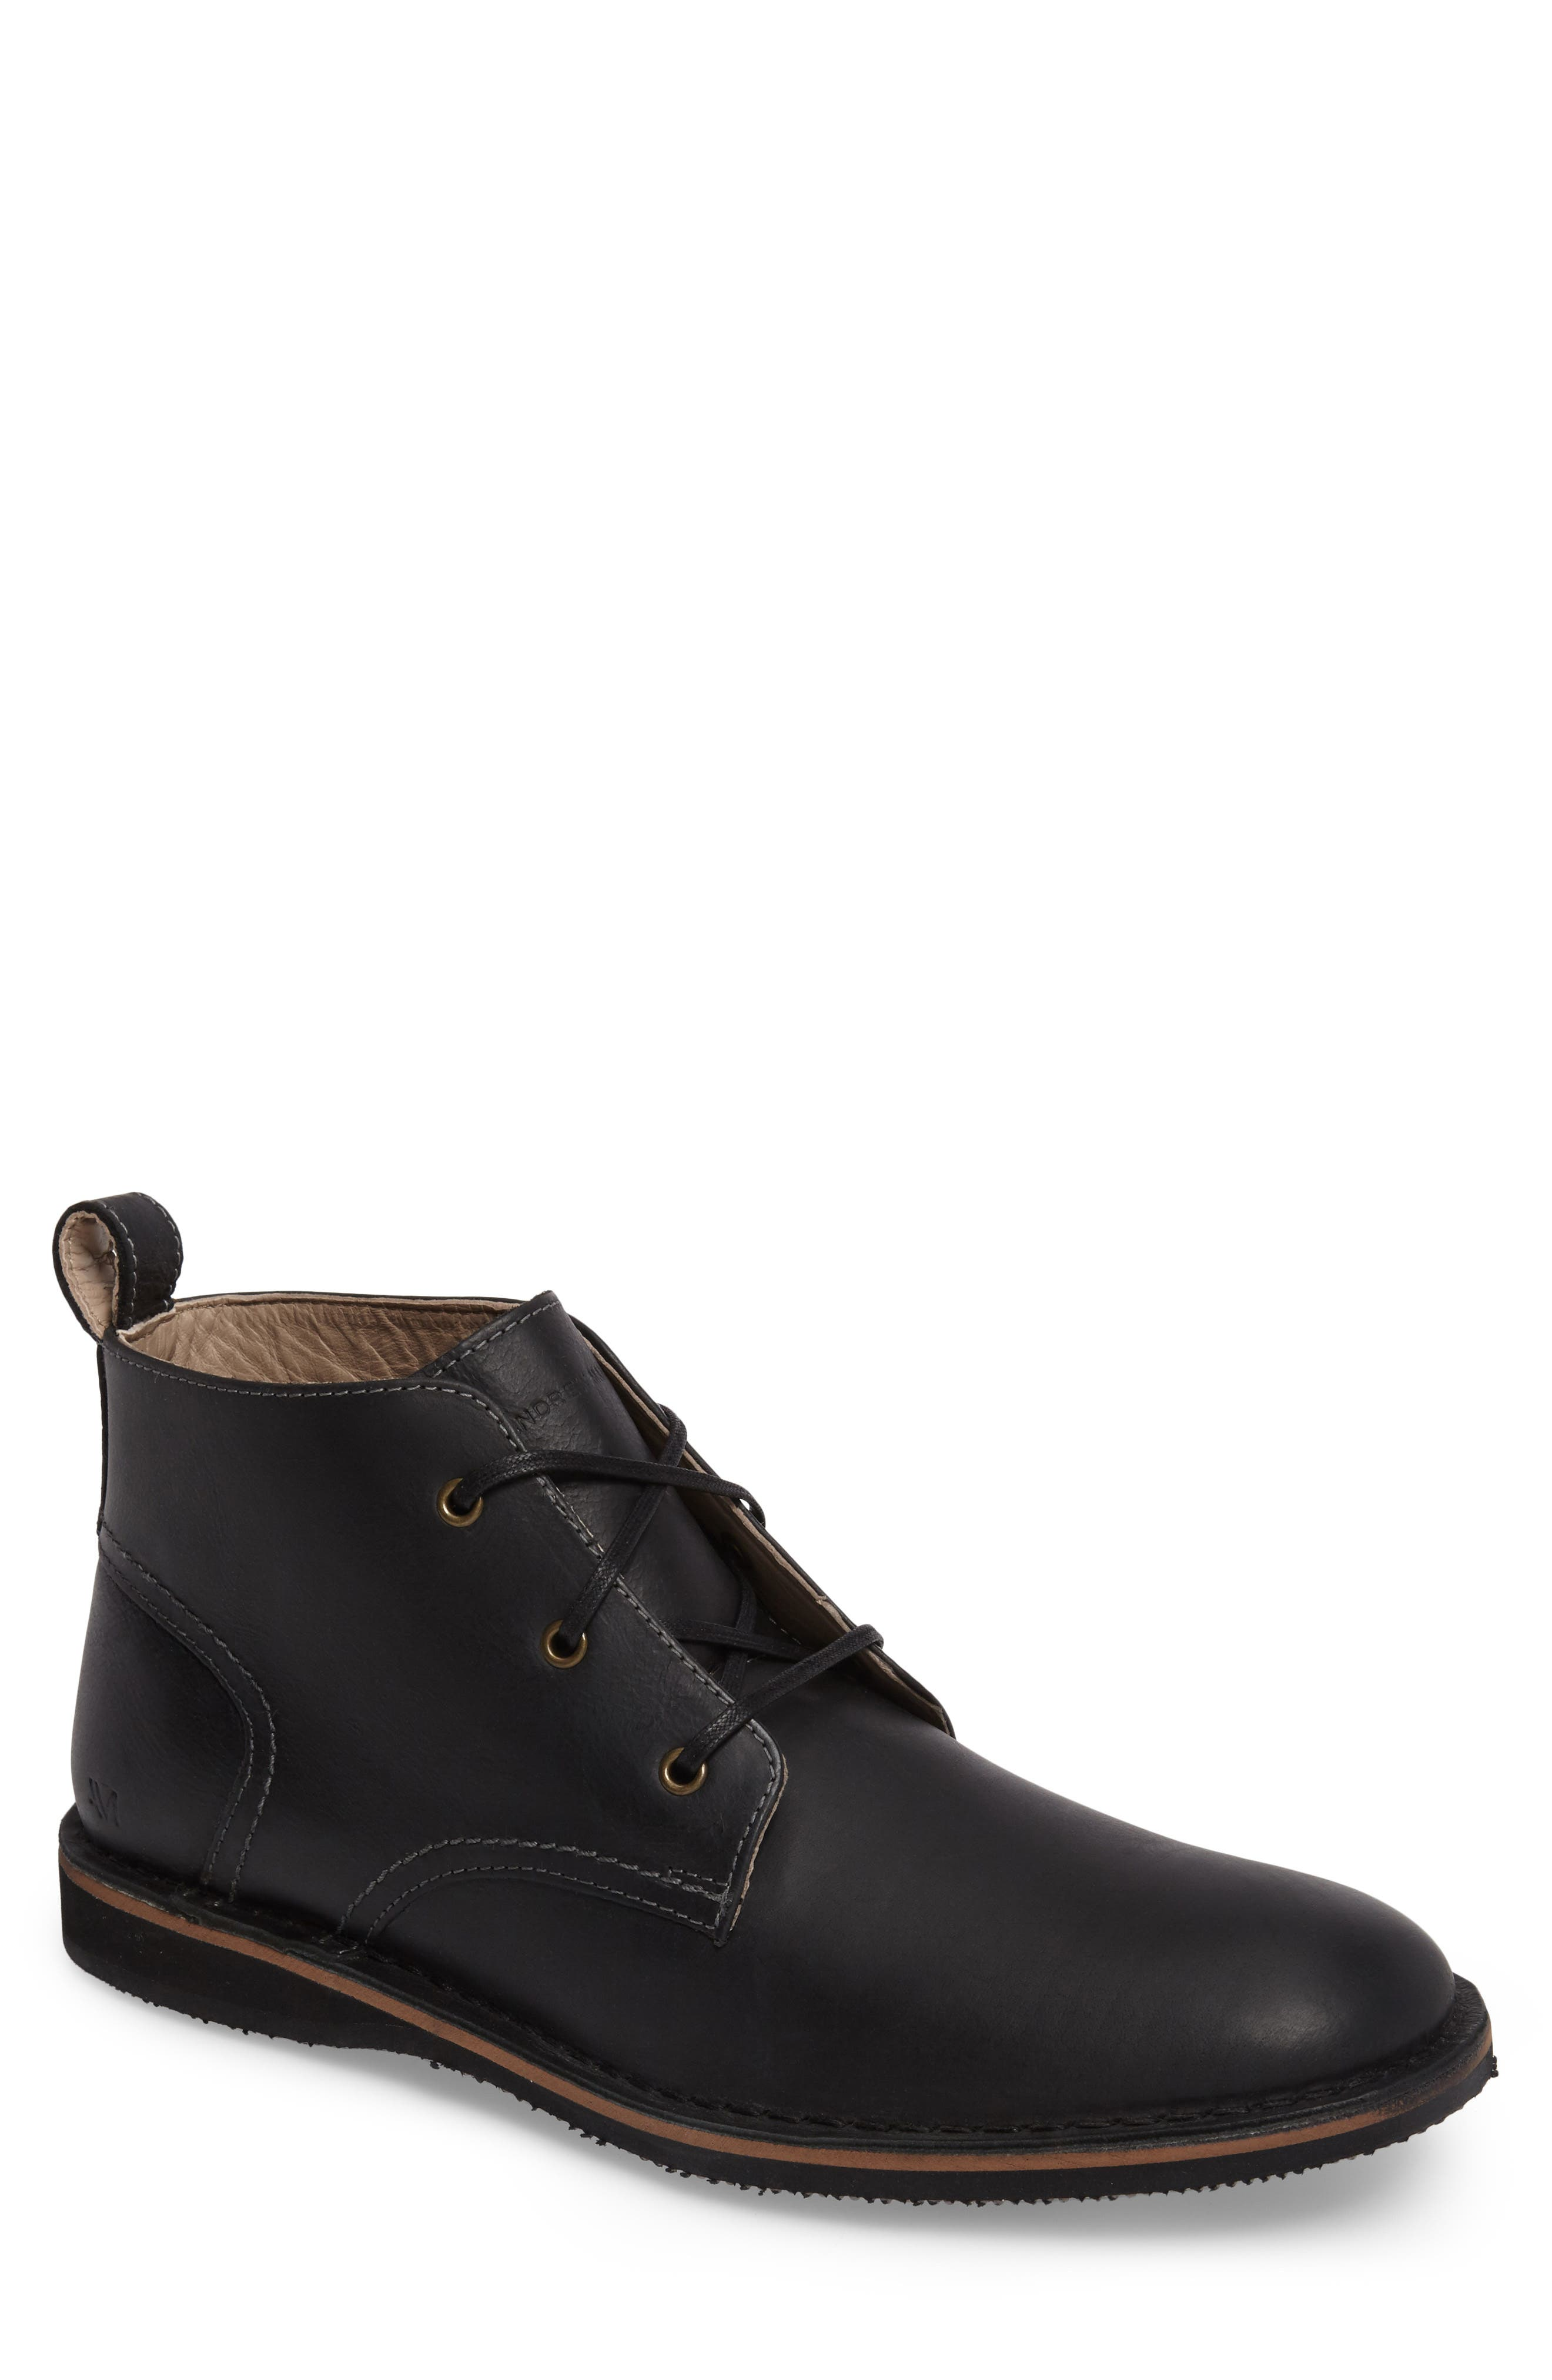 Dorchester Chukka Boot,                         Main,                         color, Black Leather